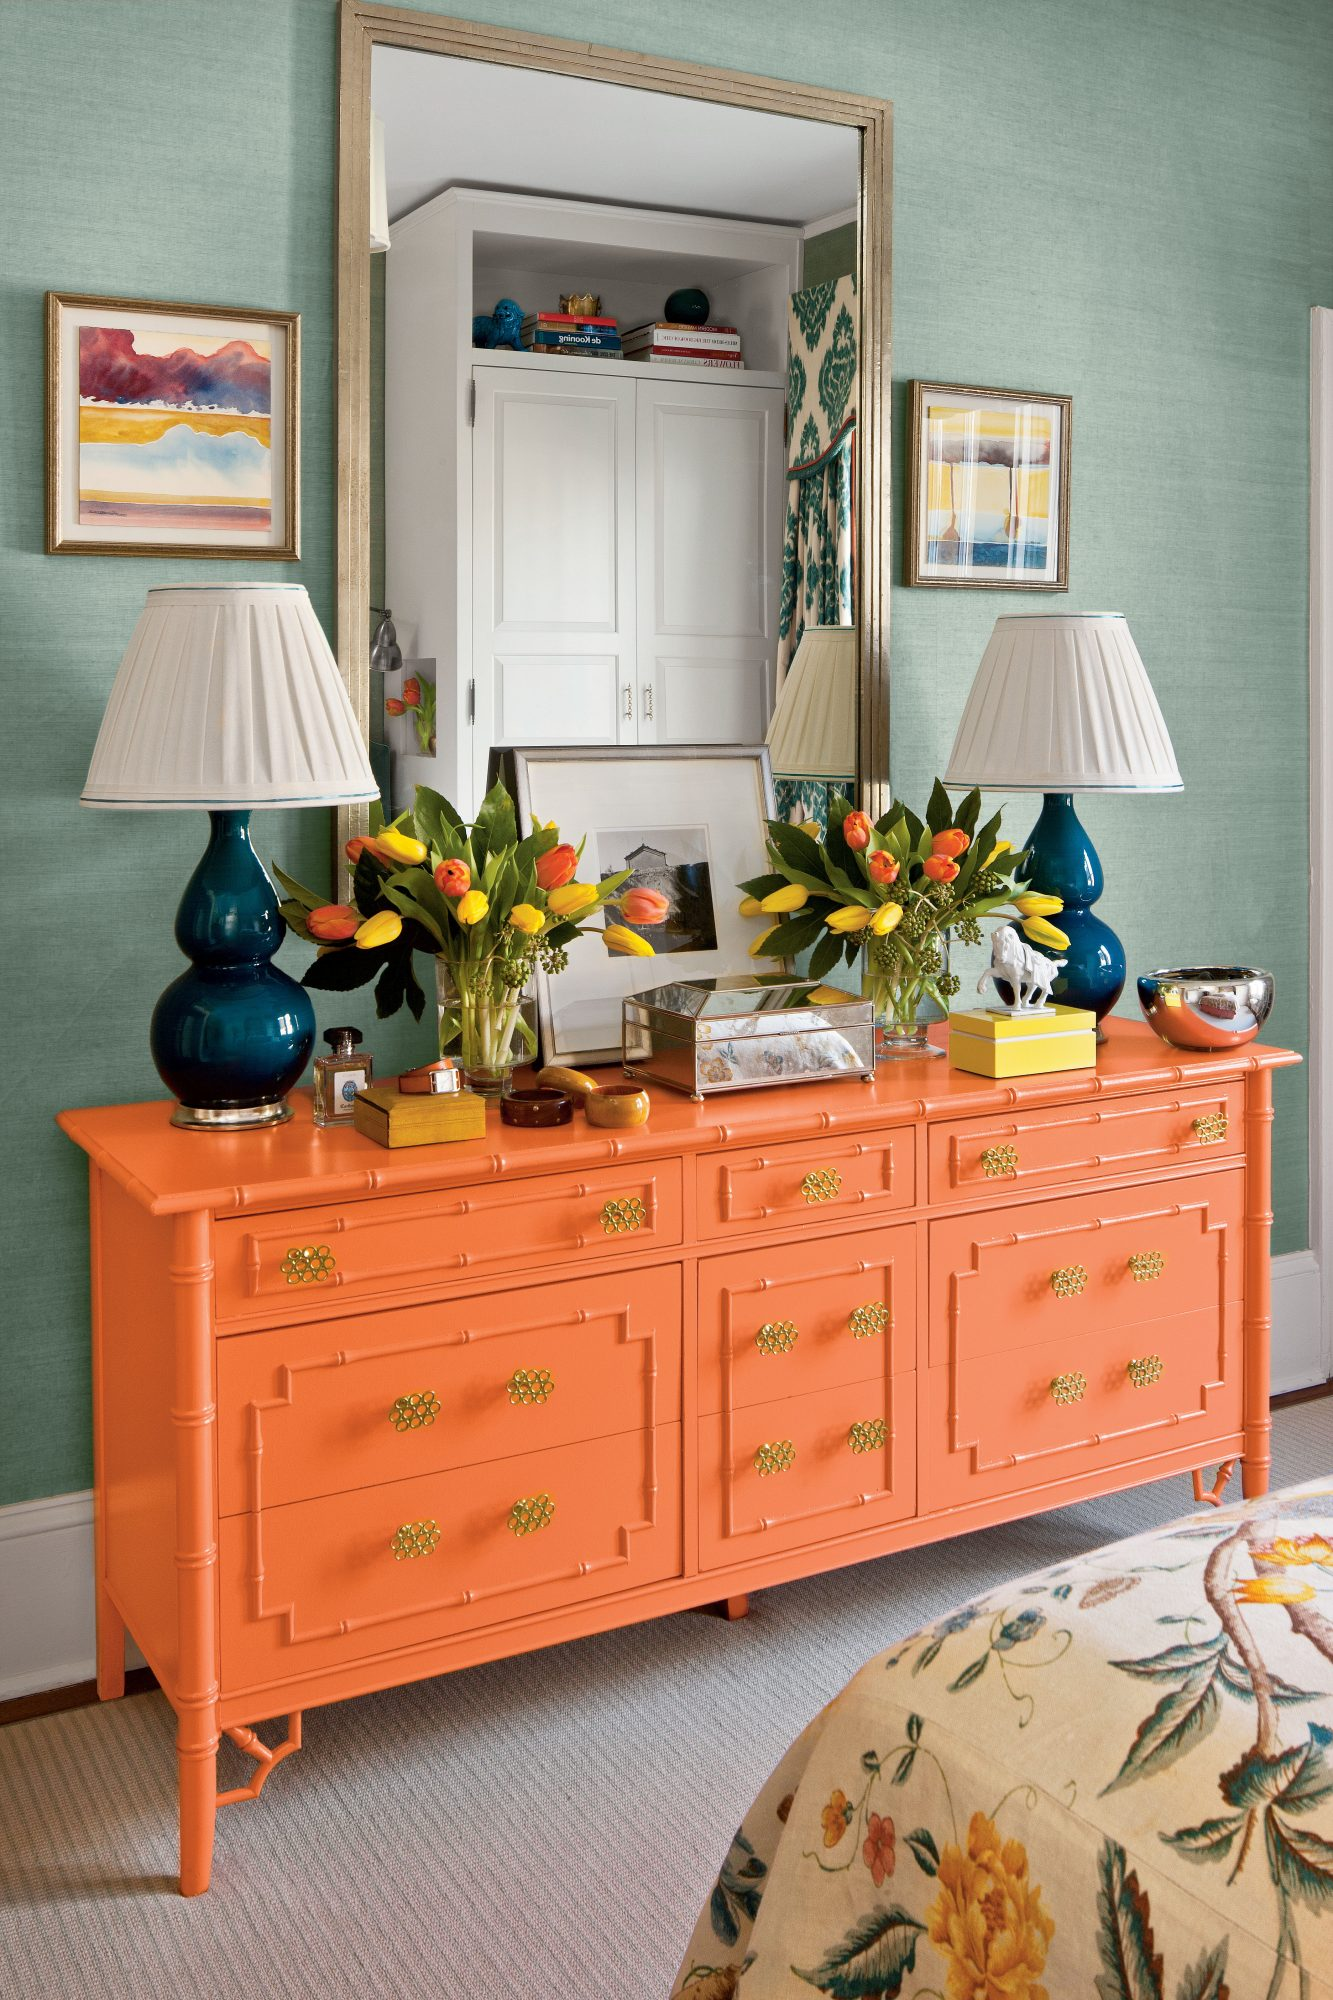 The One Thing I Wish I Knew Before Painting My Thrifted Furniture